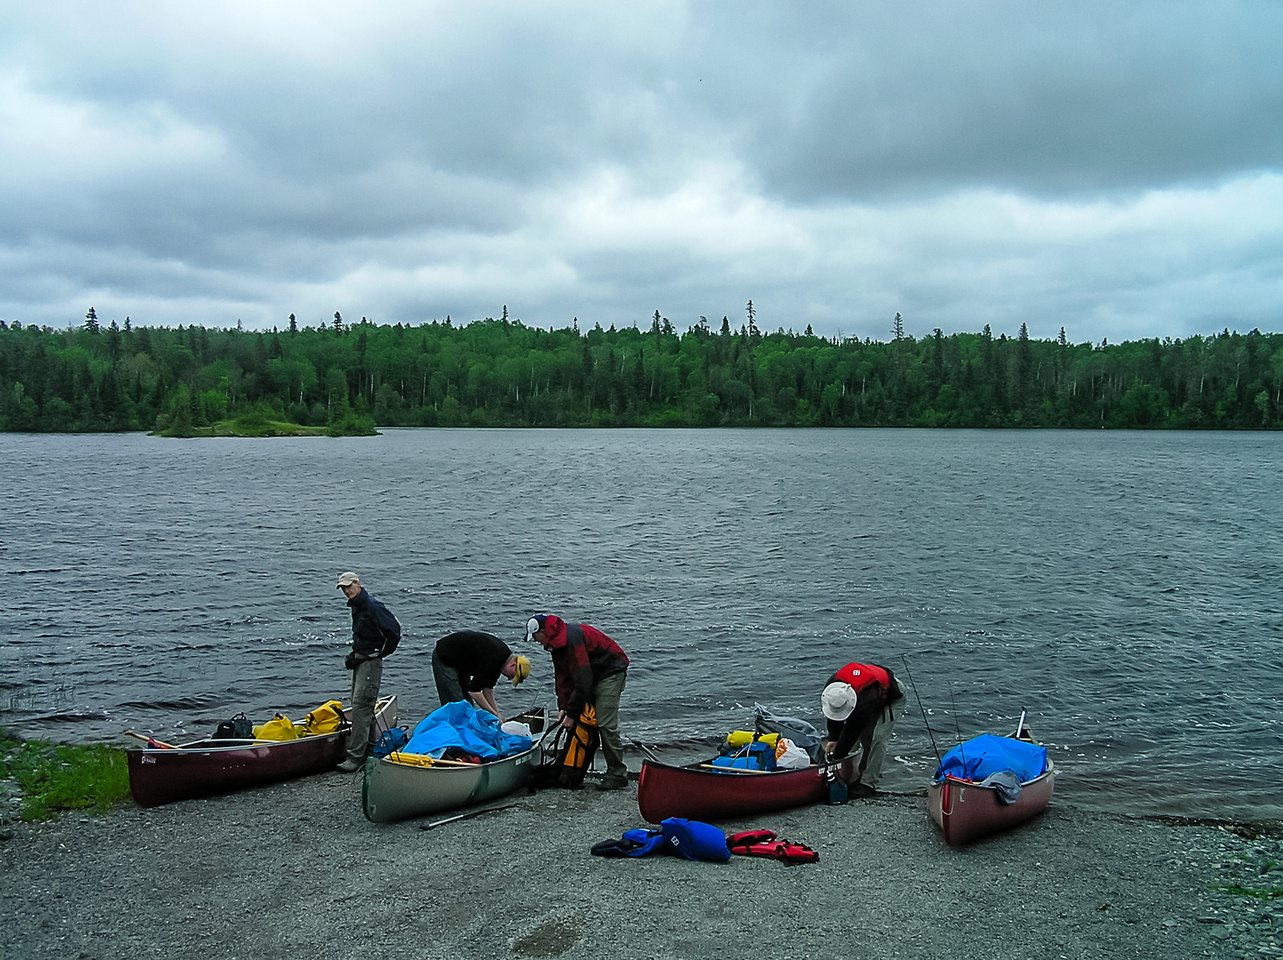 Putting in at the Beresford Lake boat launch. A typical start to a canoe trip - clouds and wind!